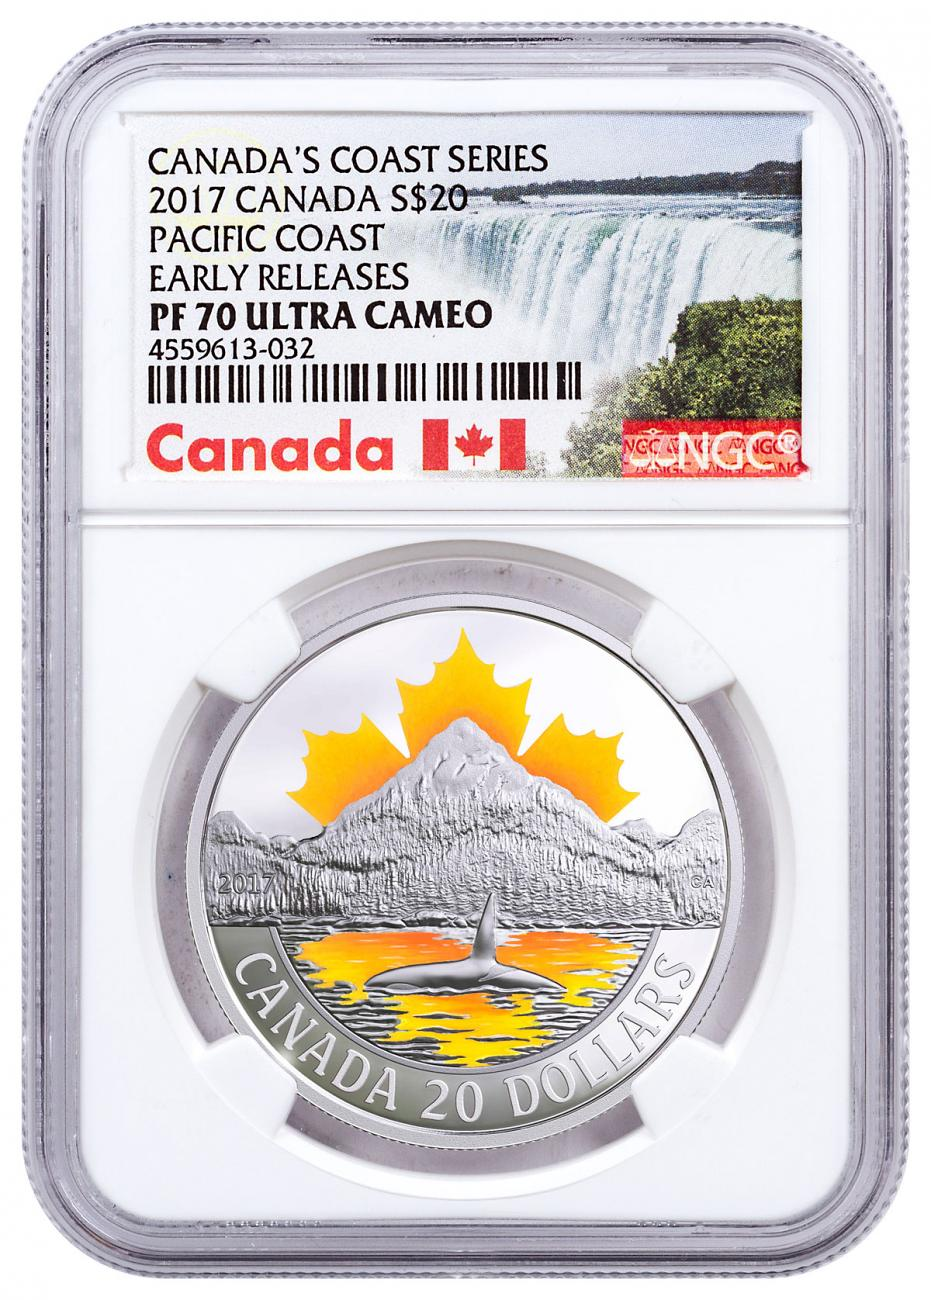 2017 Canada Canada's Coast - Pacific Coast 1 oz Silver Proof $20 Coin NGC PF70 UC ER Exclusive Canada Label